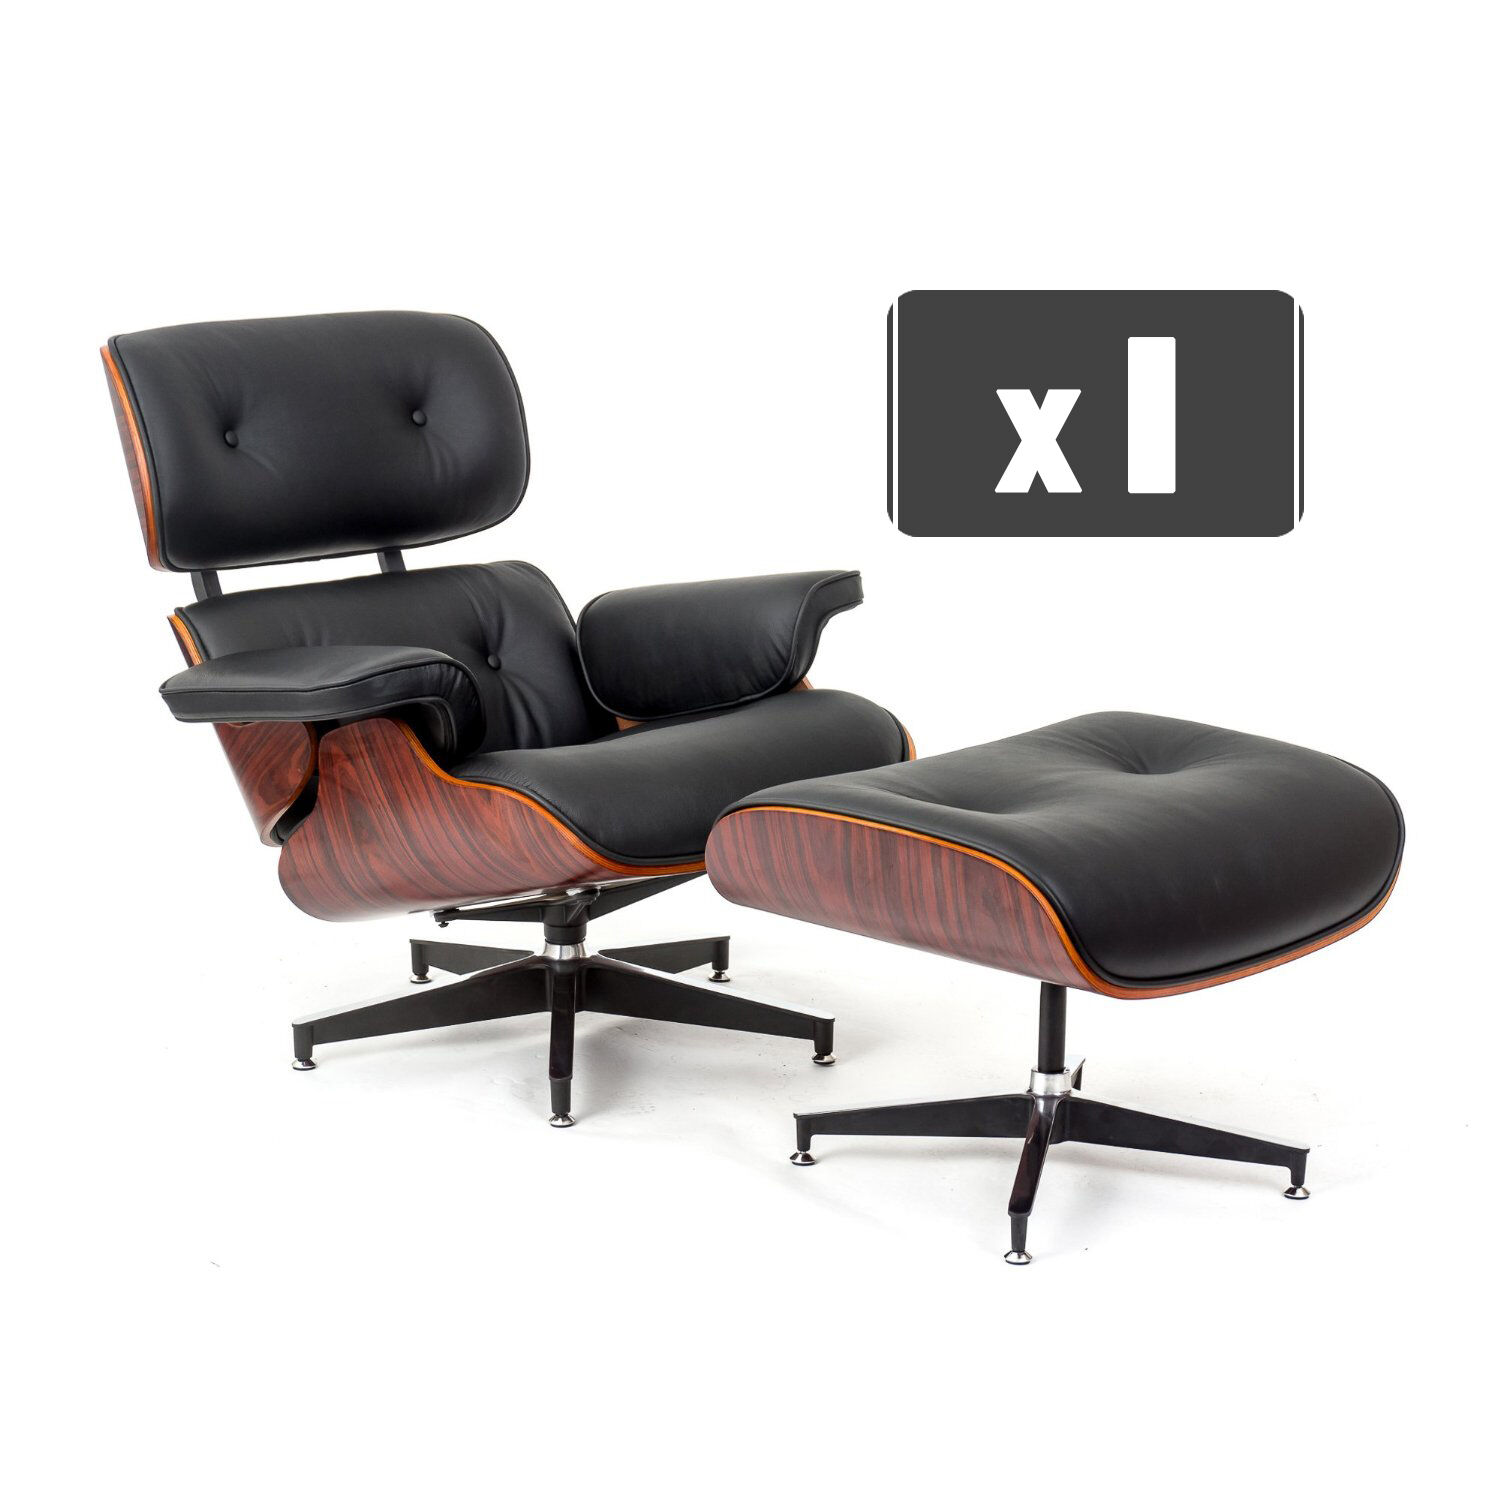 Replica charles eames lounge chair ottoman in black for Chaise charles eames ebay